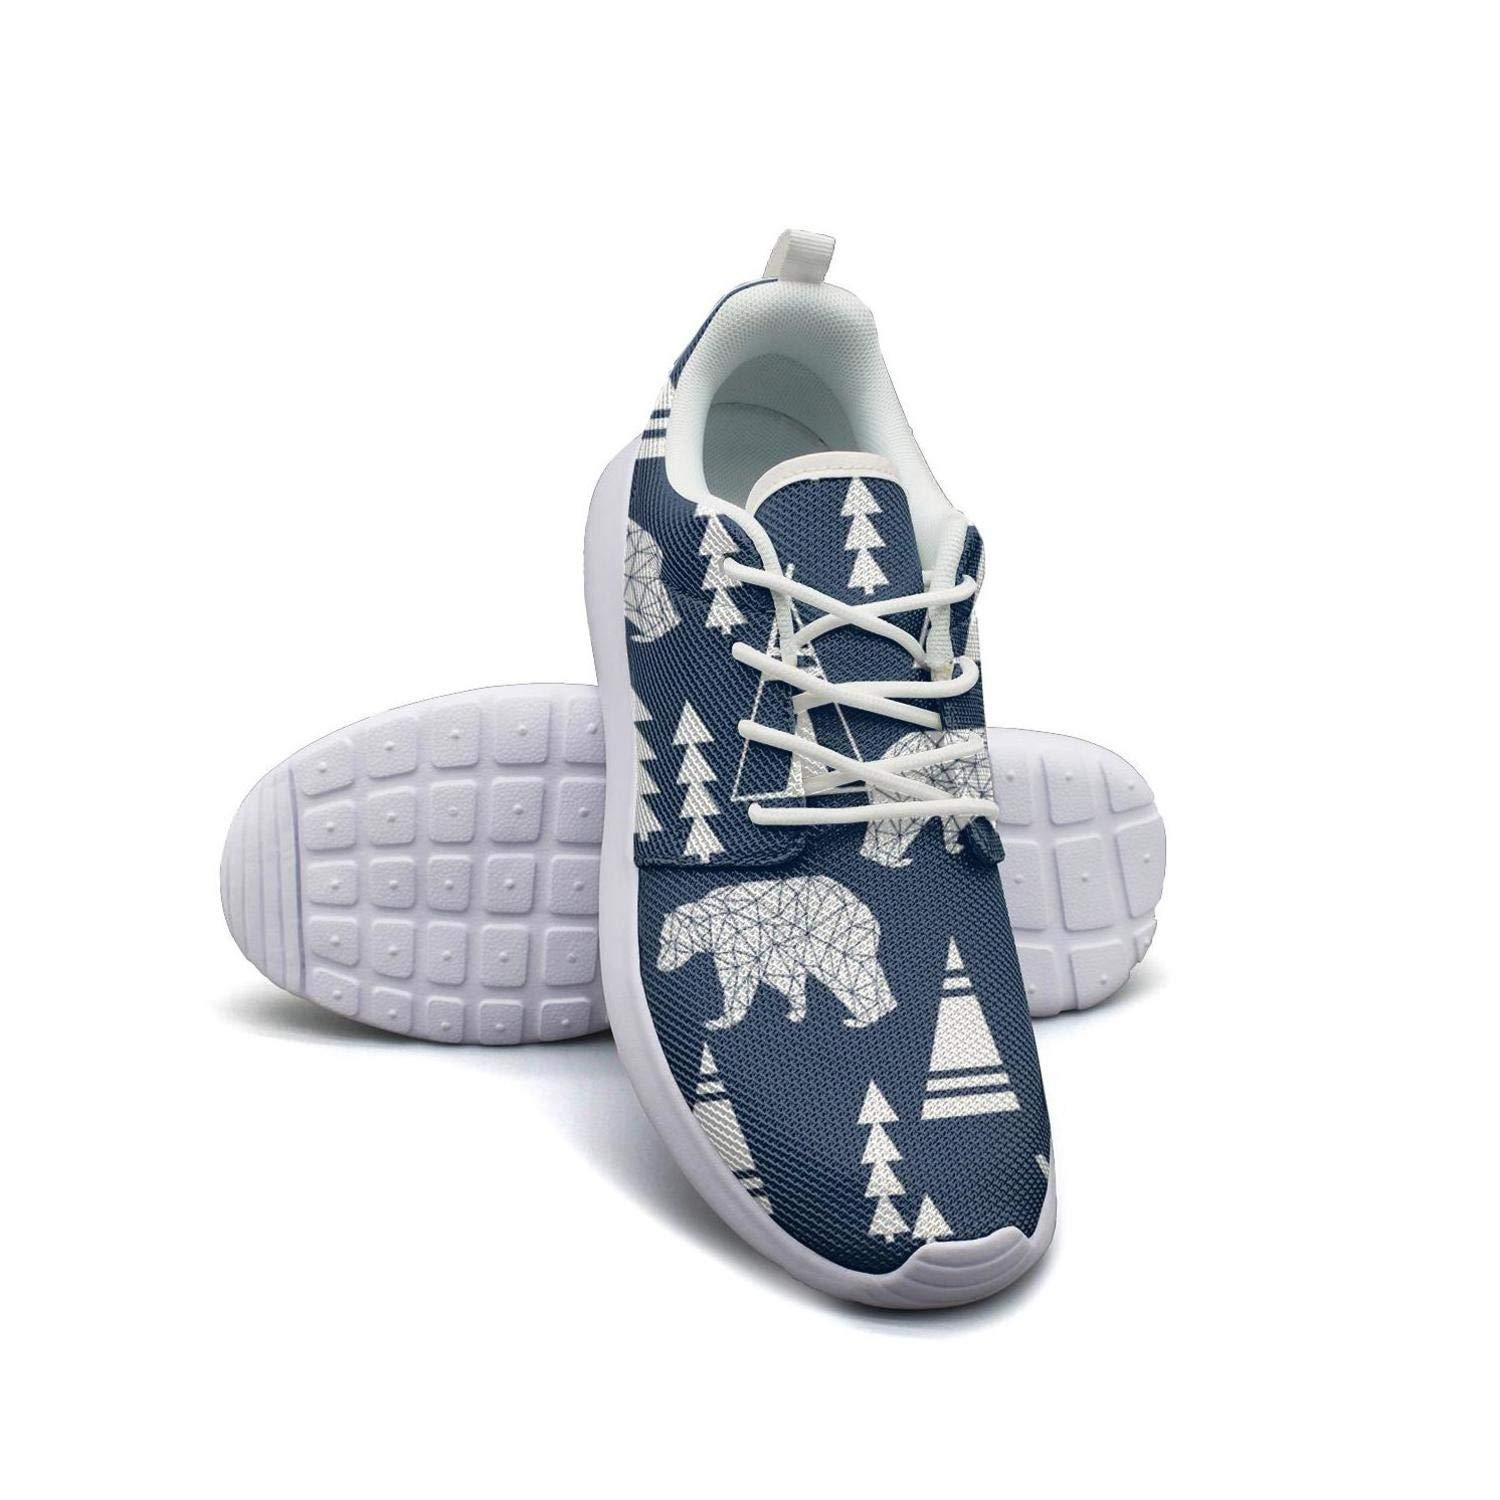 YSLC Teepee Bear Forest Lightweight Running Shoes for Women Sneaker Rubber Sole Breathable Shoes